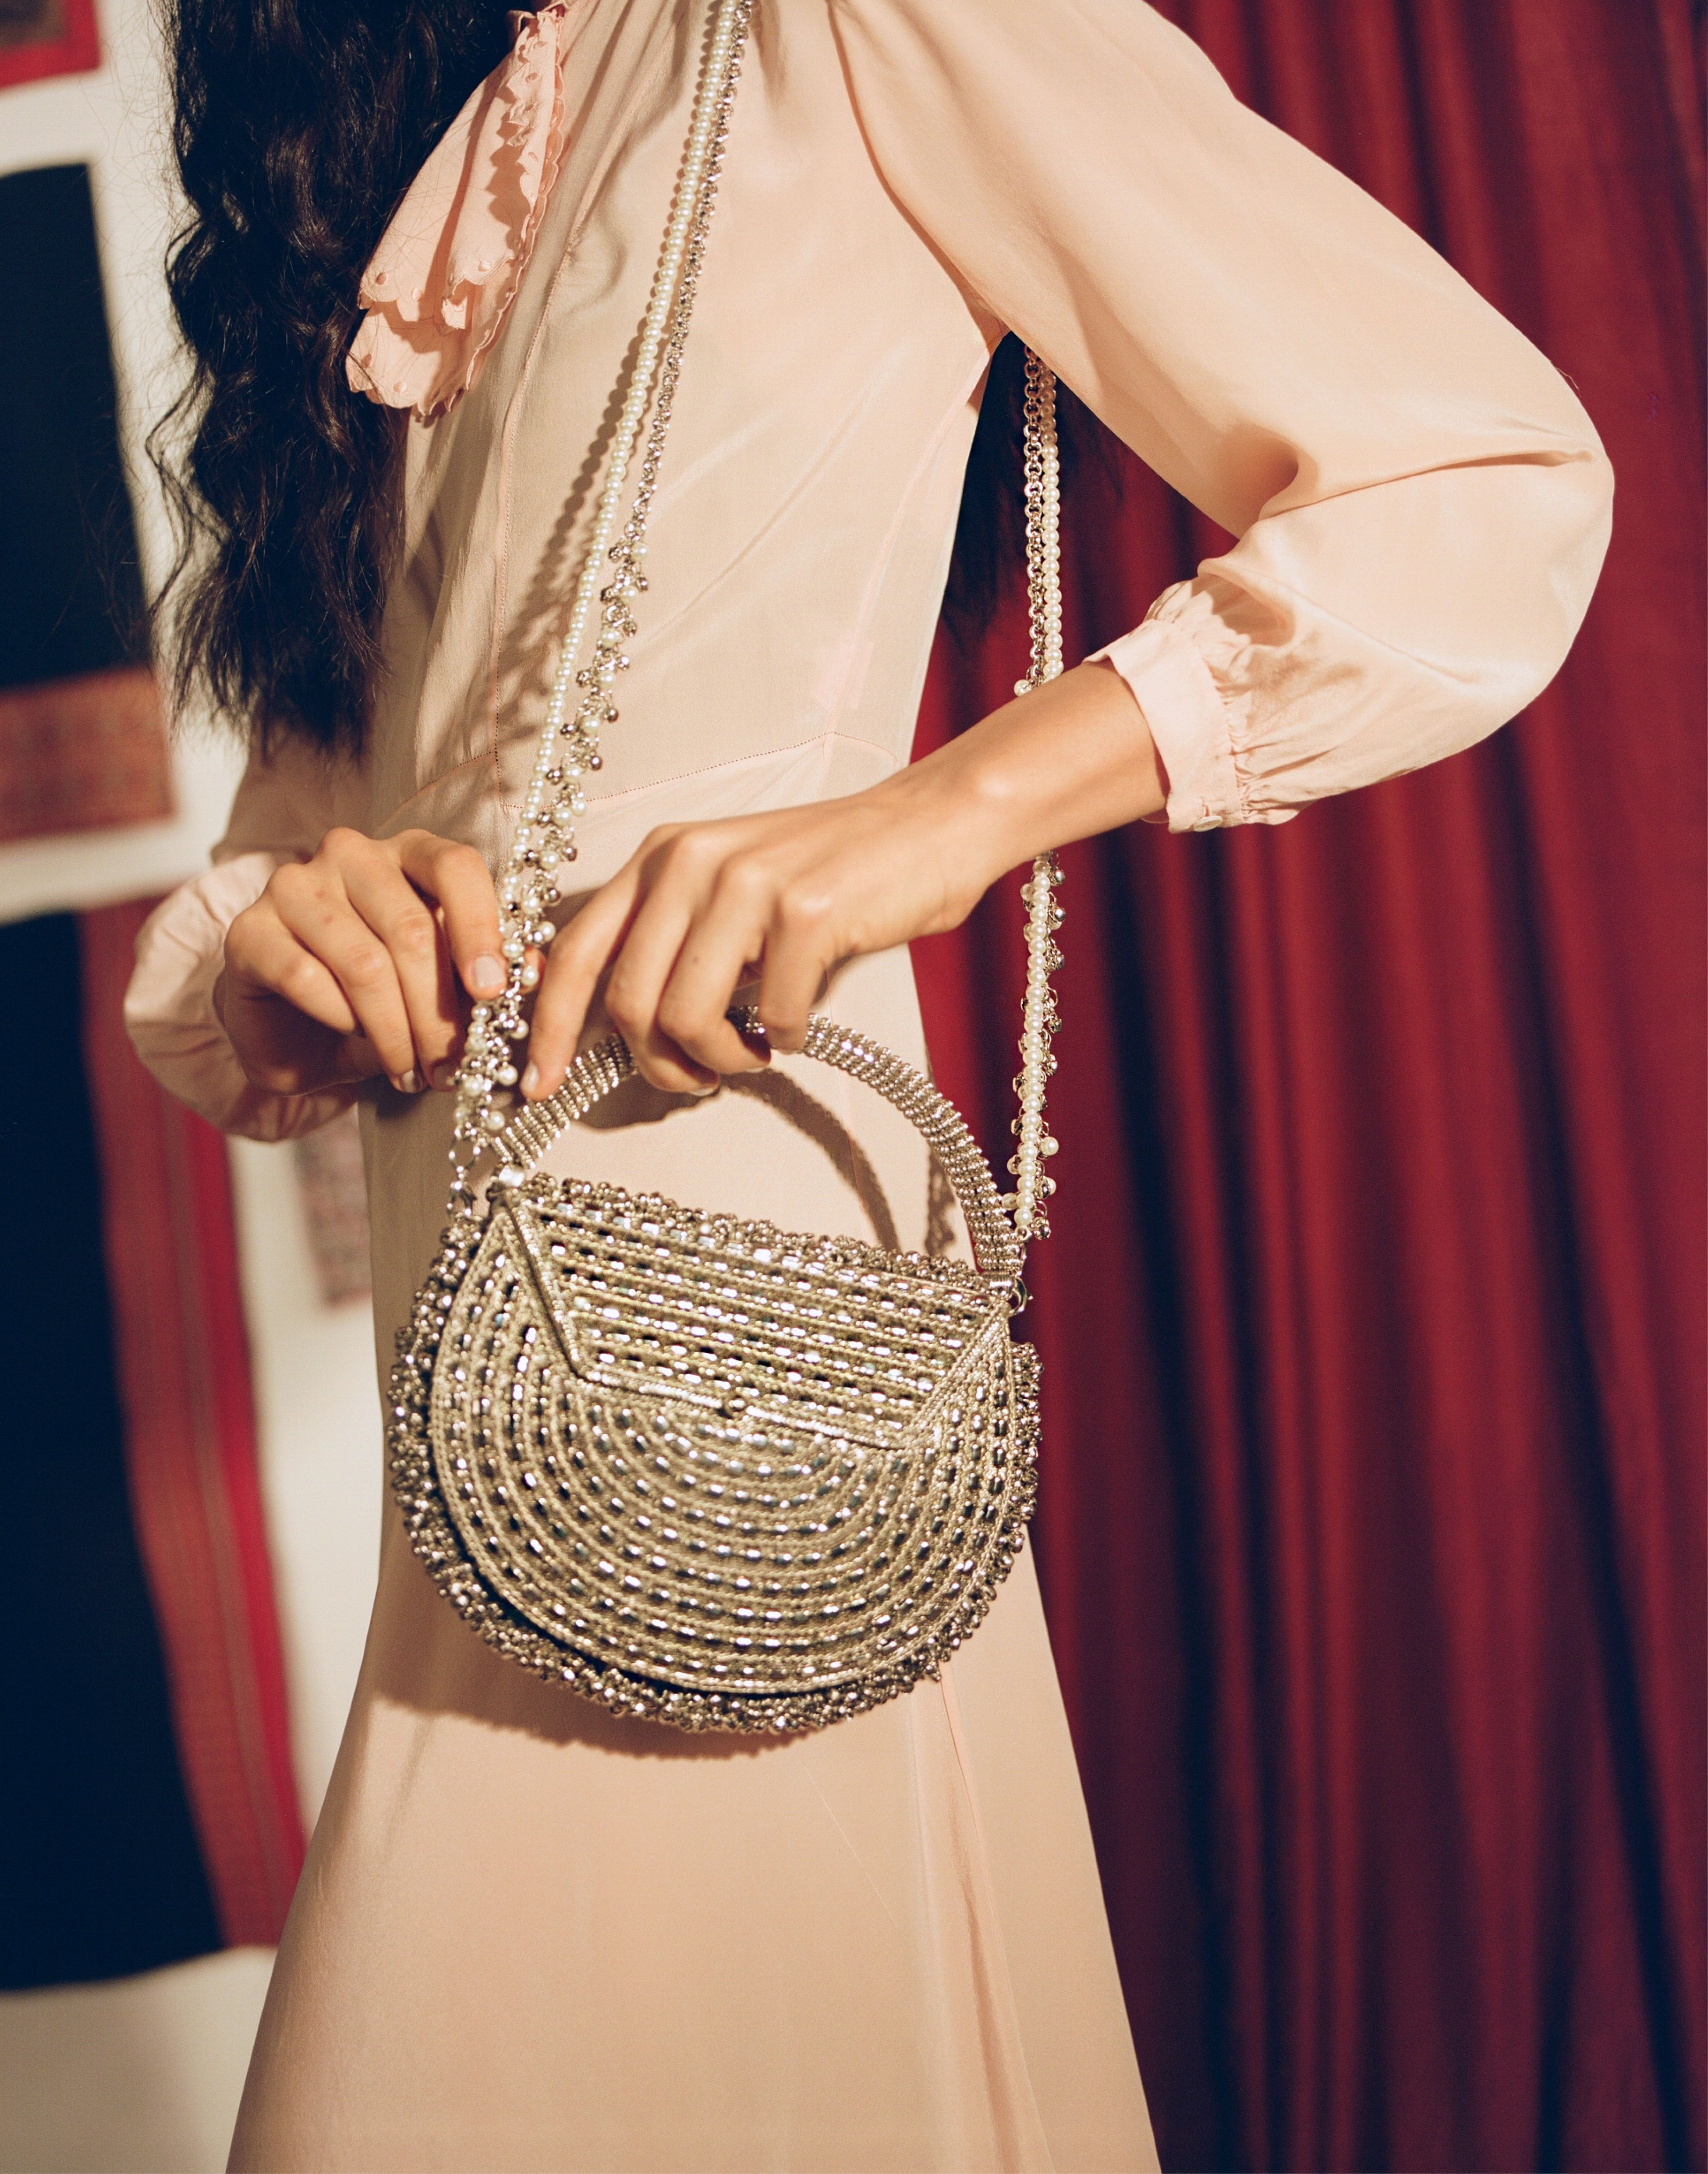 Mae Cassidy Silver Malini Pearl Handbag Bracelet Clutch Bag. Modelled by Emma Laird. Photography by Annie Lai. As seen in Evening Standard, Hello Fashion